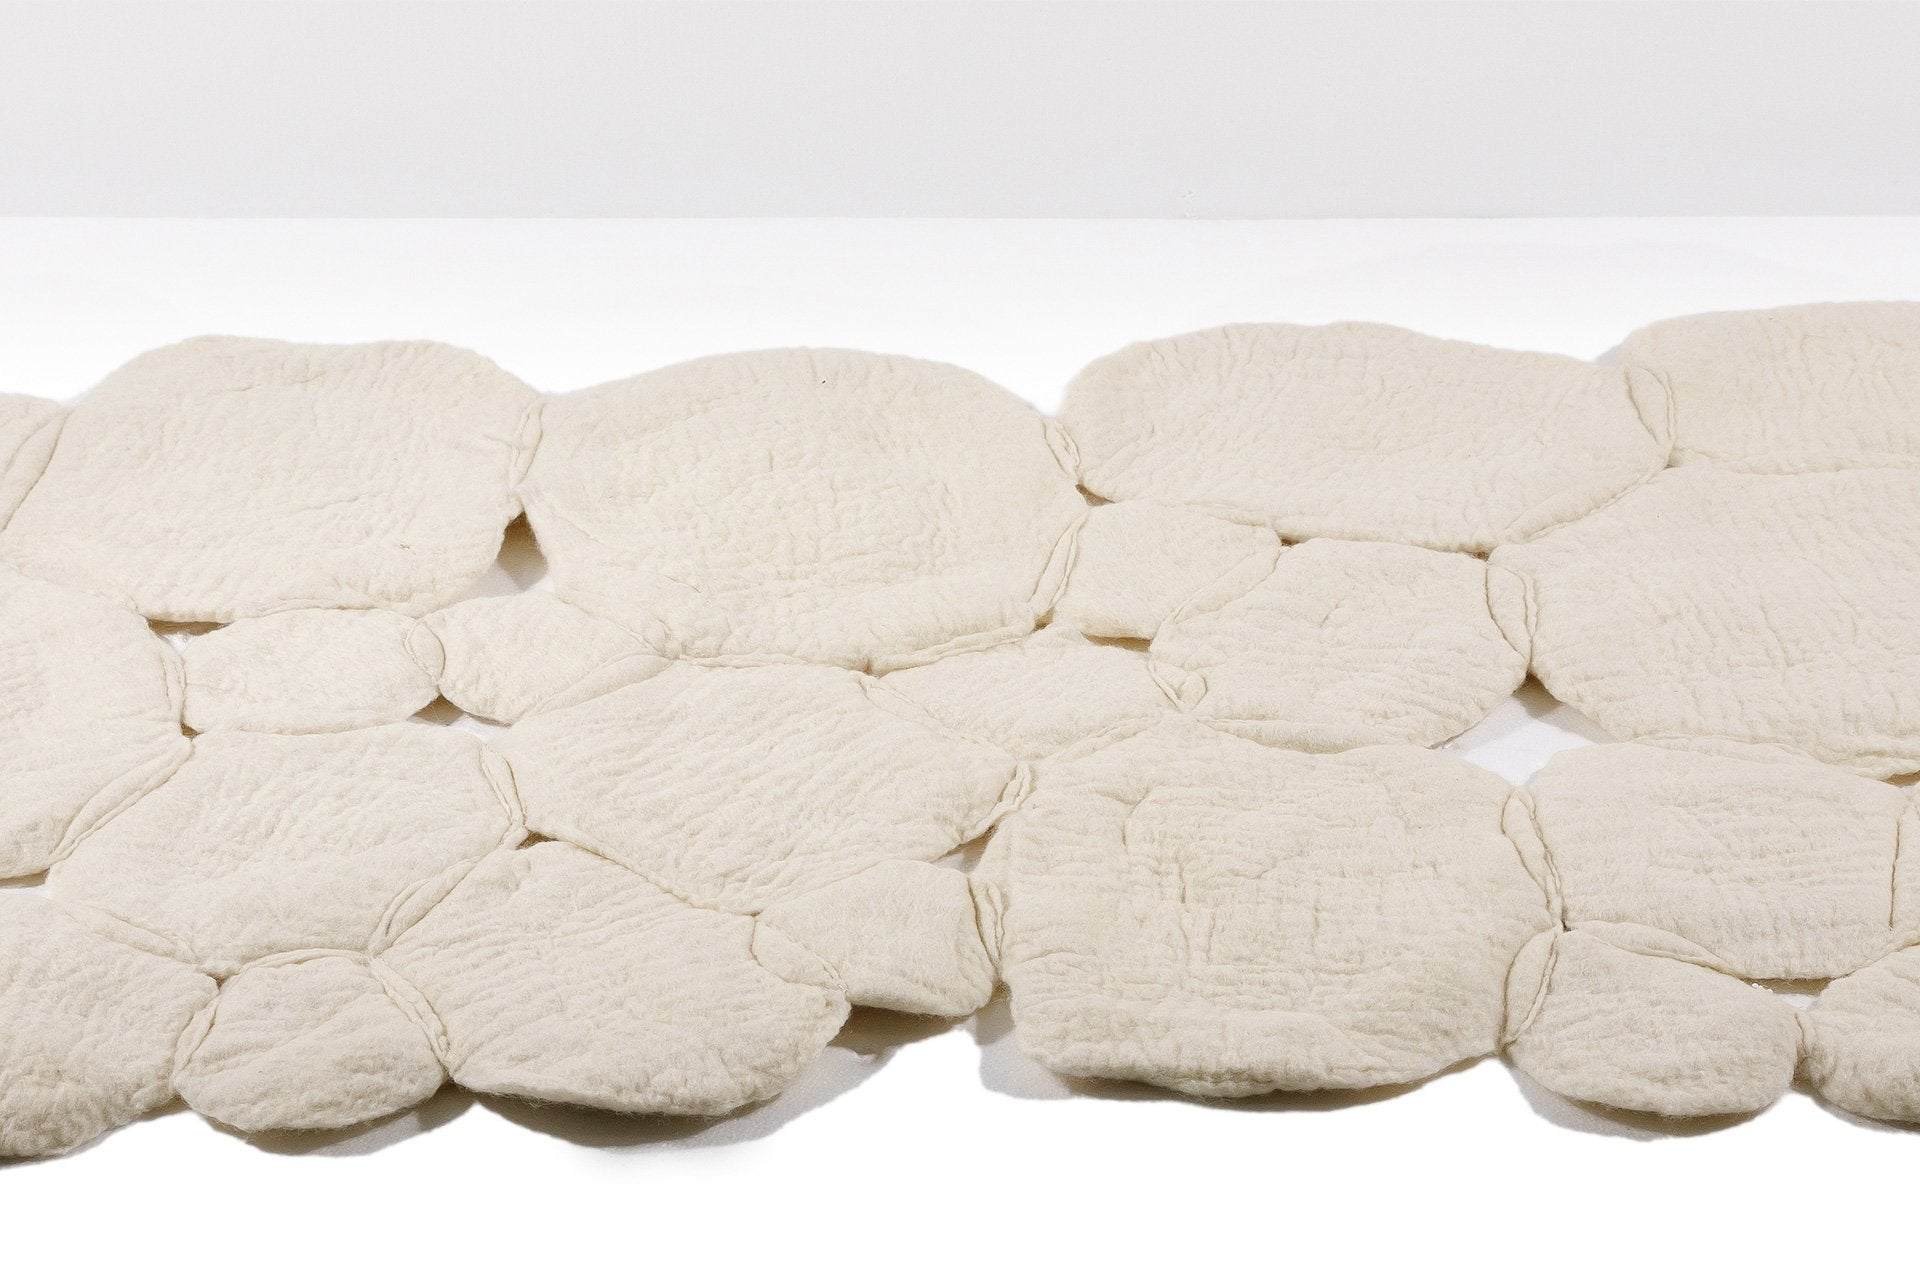 Nevoeiro Rug by Inês Schertel for Mercado Moderno. Schertel created this one-of-a-kind rug using a 6,000-year-old felting technique. The wool comes from the herd of Textel sheep that live on her ranch in Rio Grande do Sul. Photo © Mercado Moderno